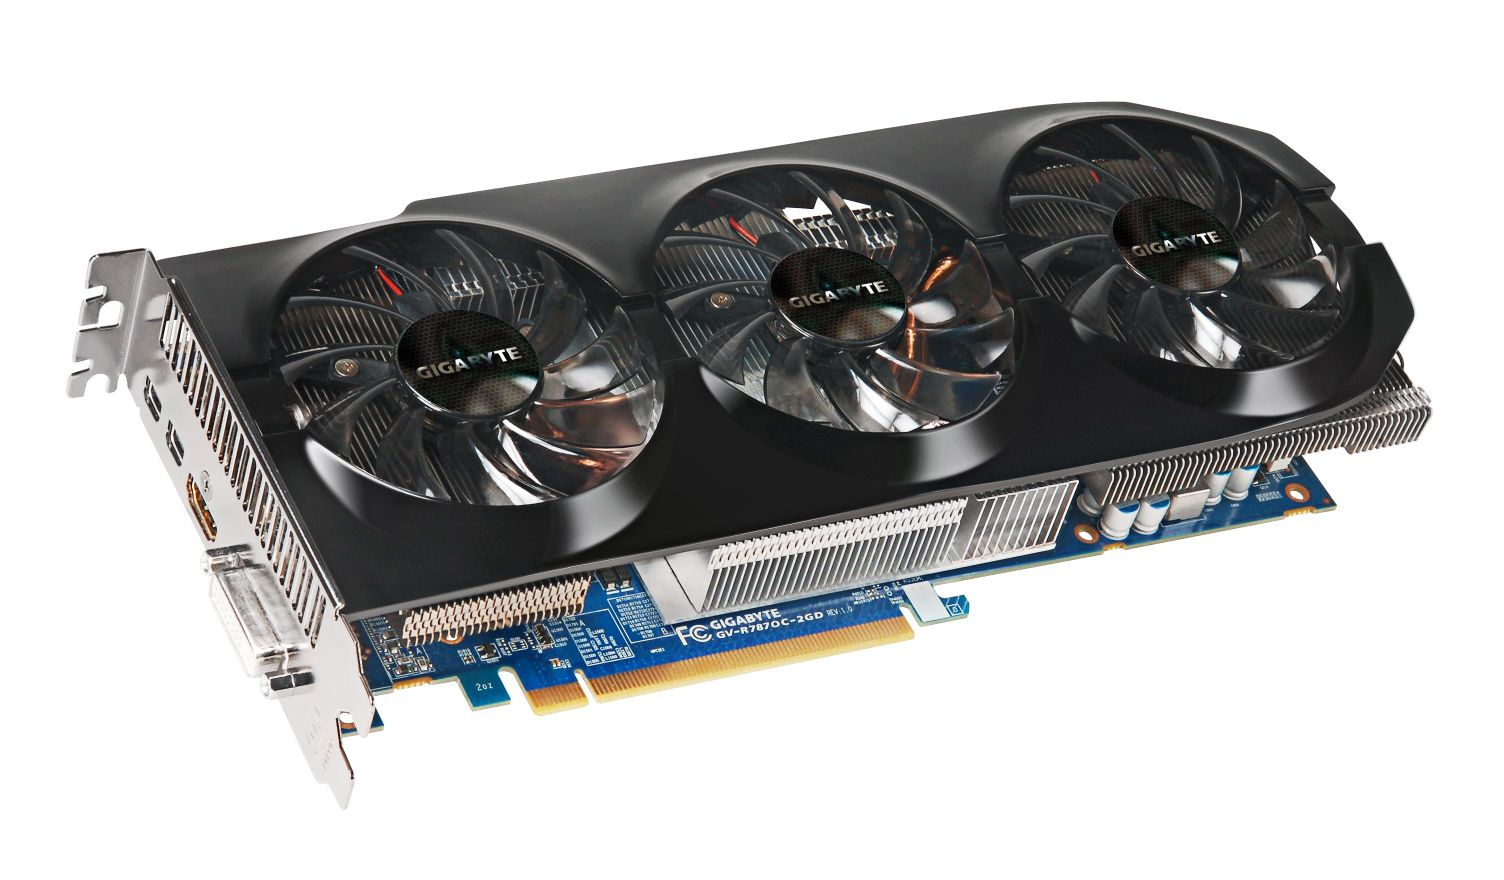 Gigabyte GeForce GTX660